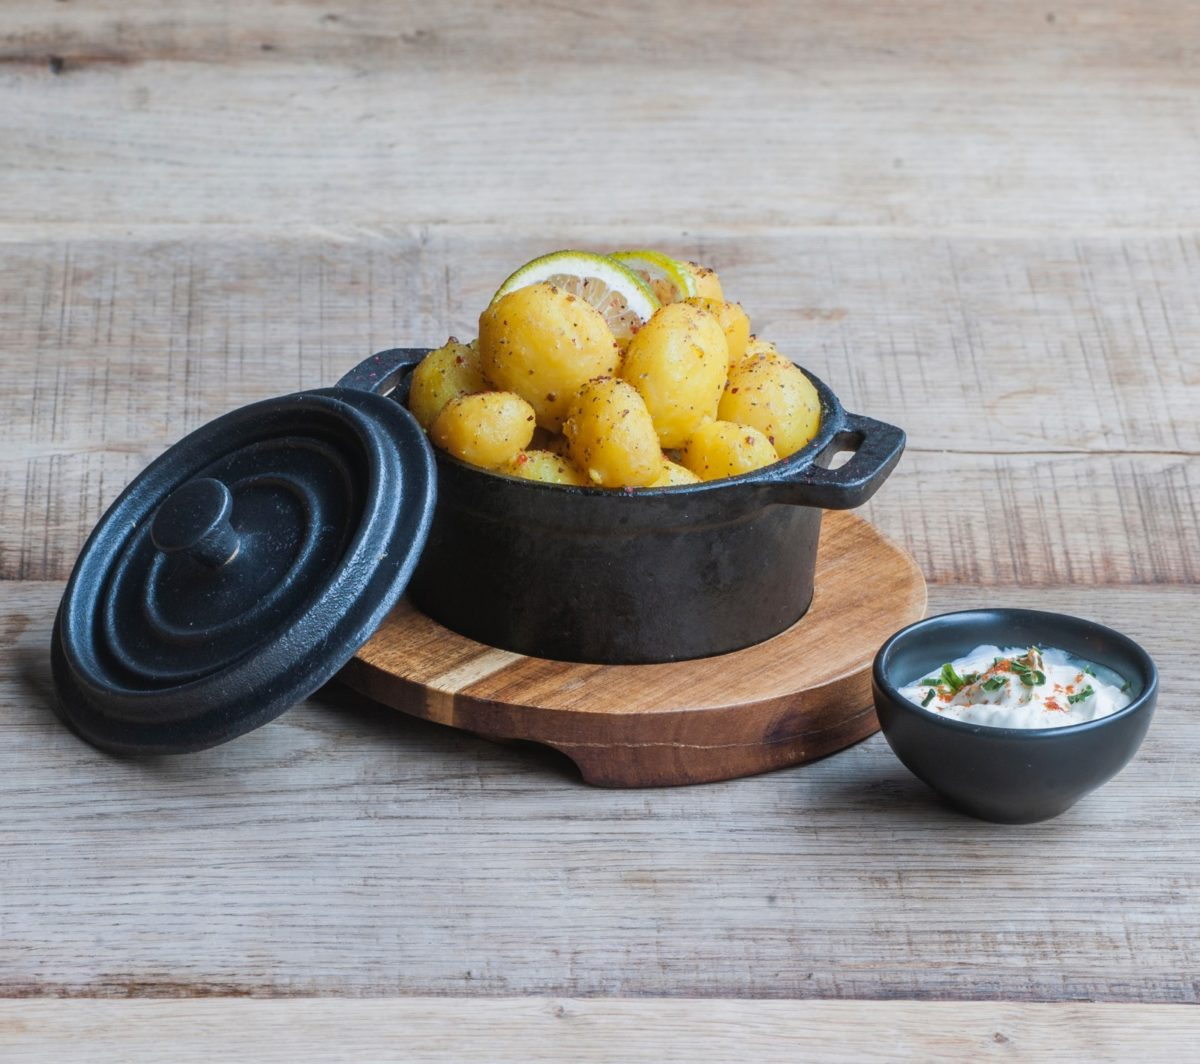 What eat after fasting boiled potatoes with dip